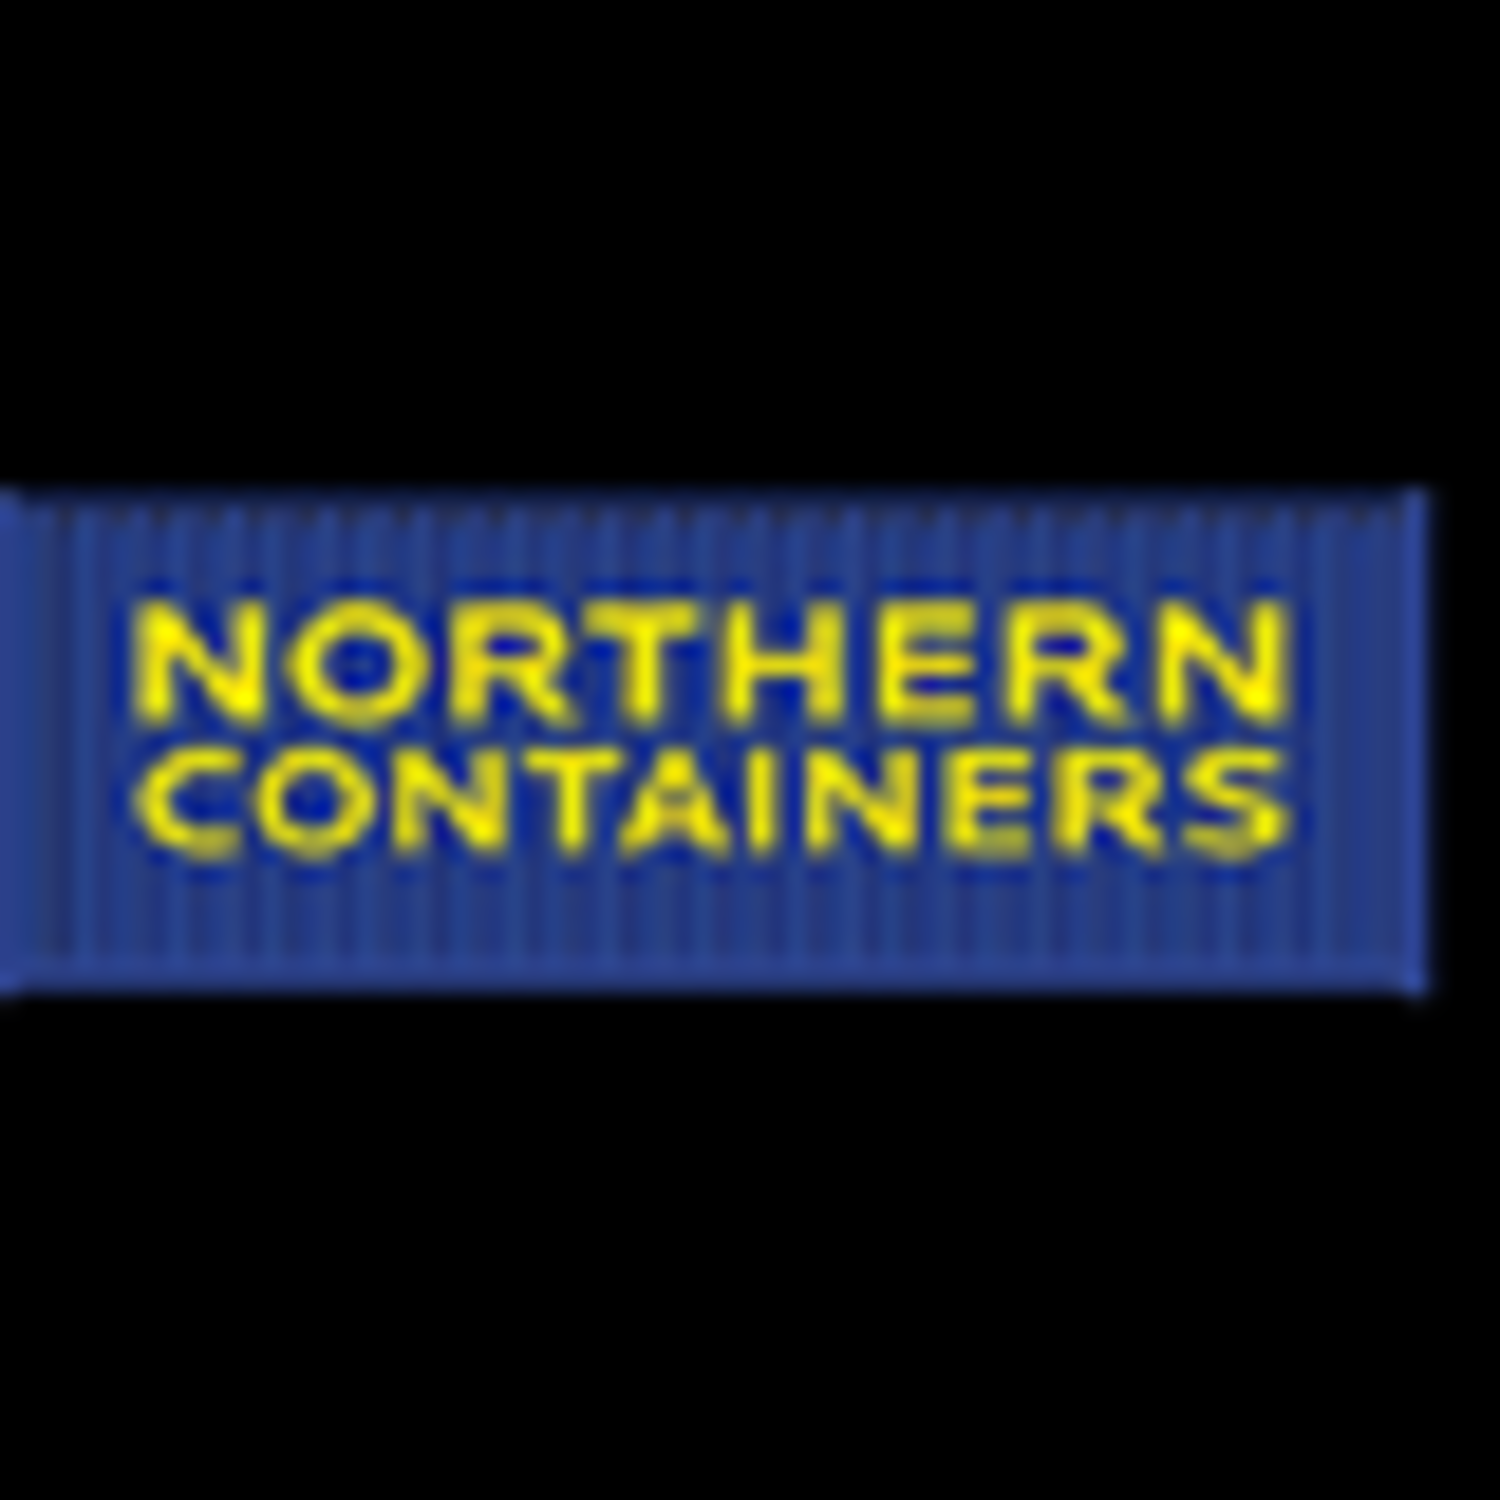 Northern Containers Ltd